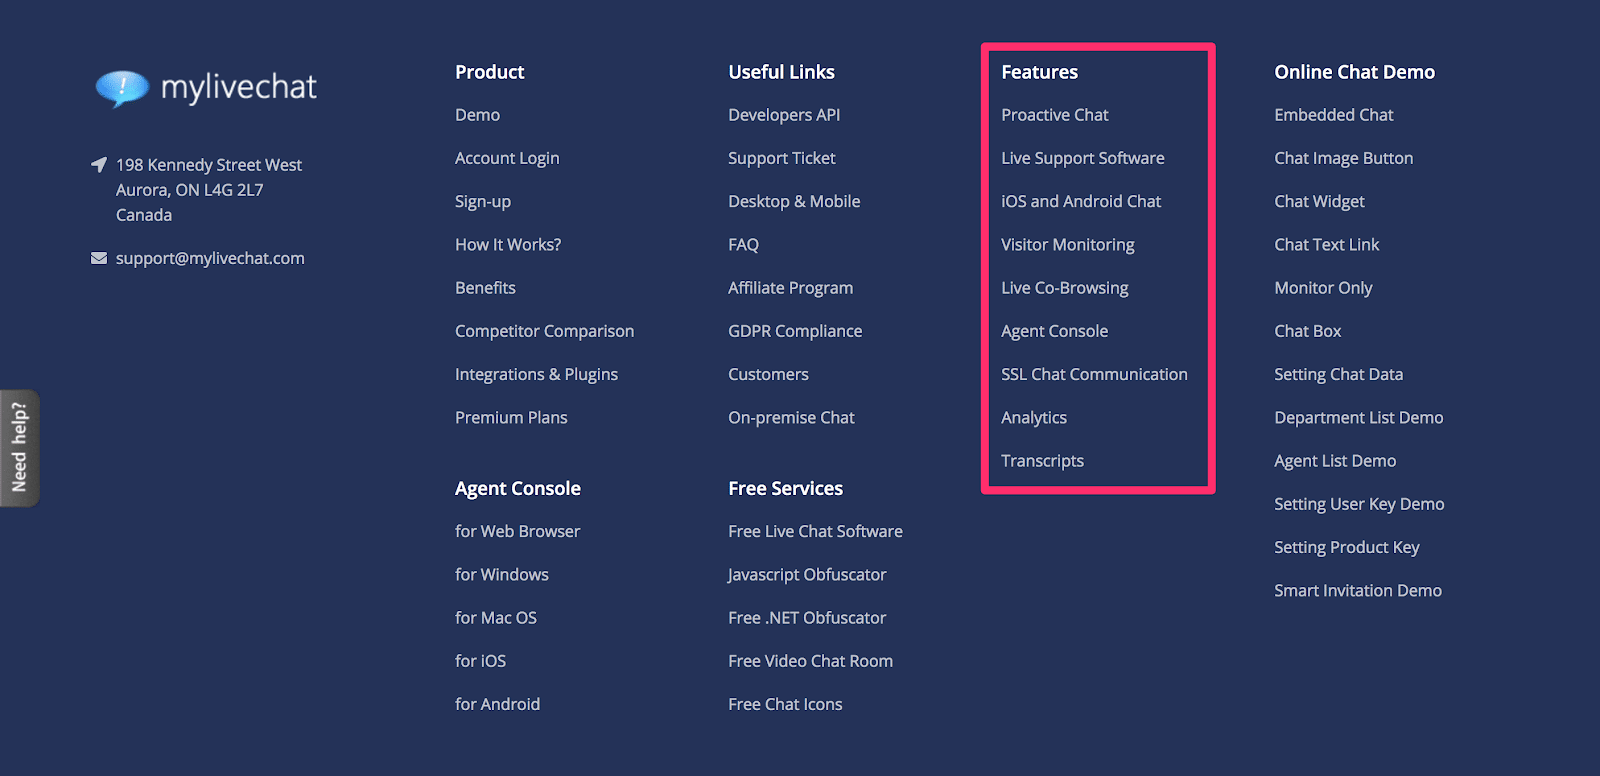 fat footer with all features displayed like previous example in the header